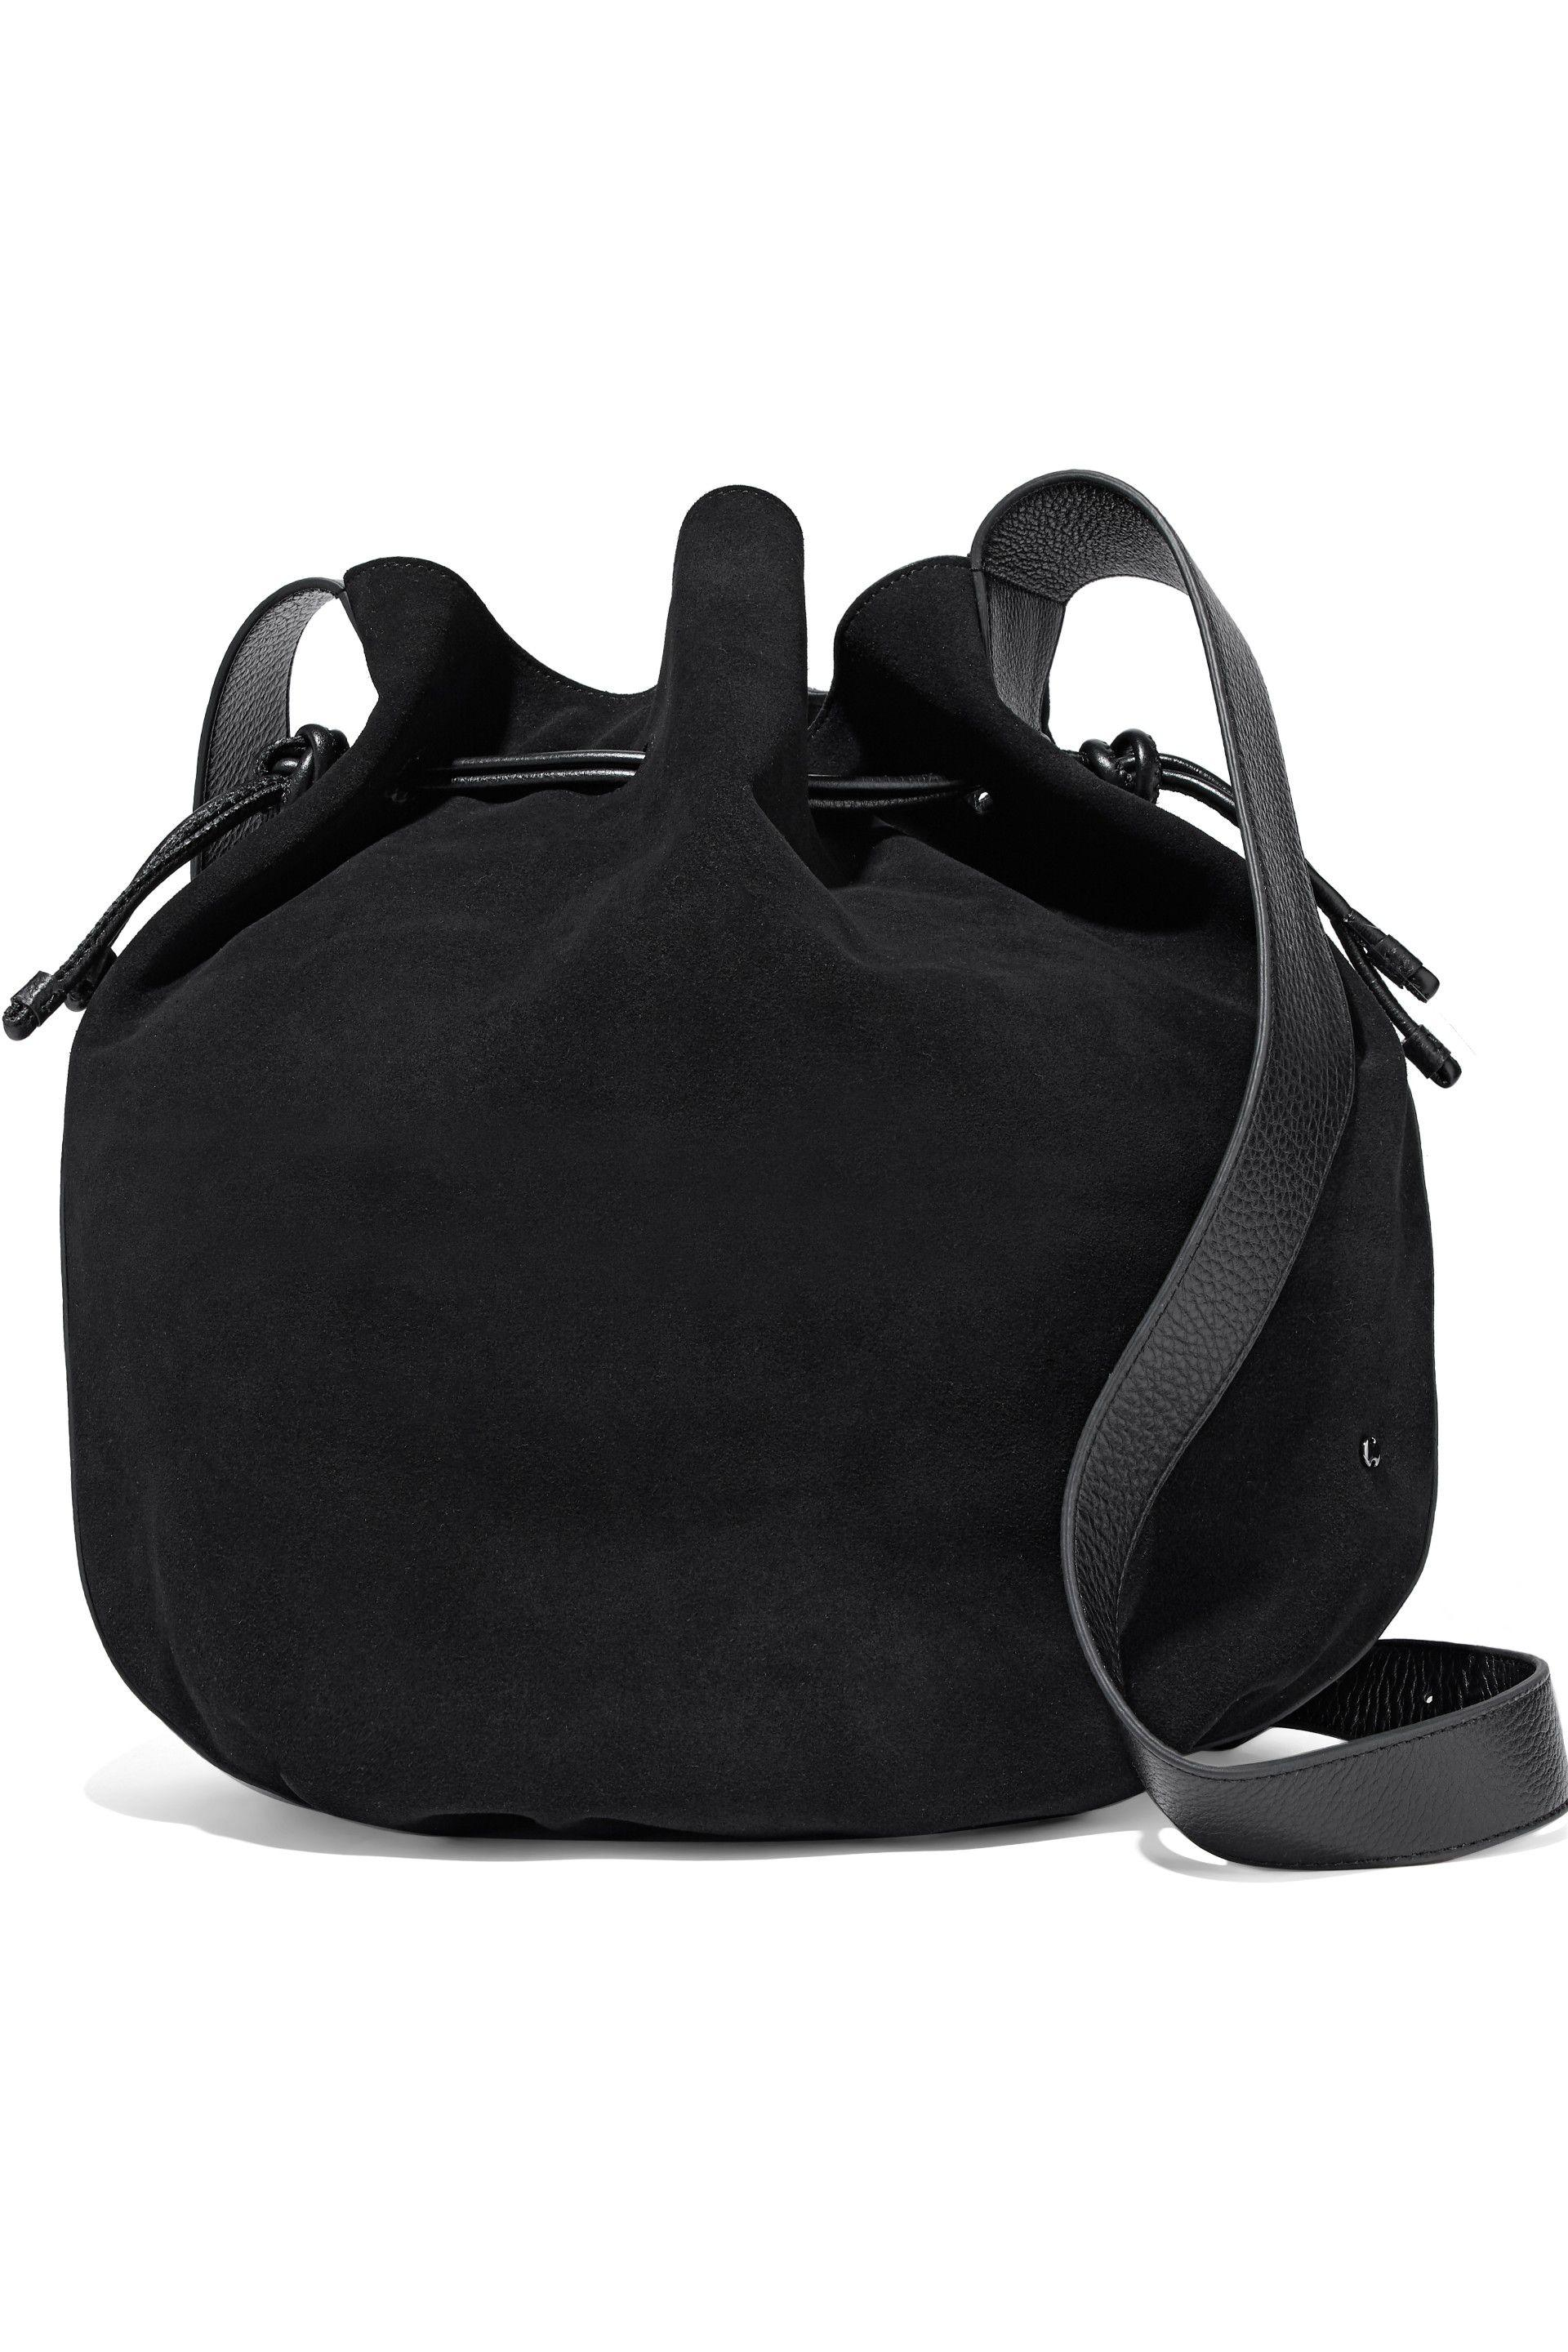 c100bd77e763 Lyst - Halston Leather-trimmed Suede Bucket Bag in Black